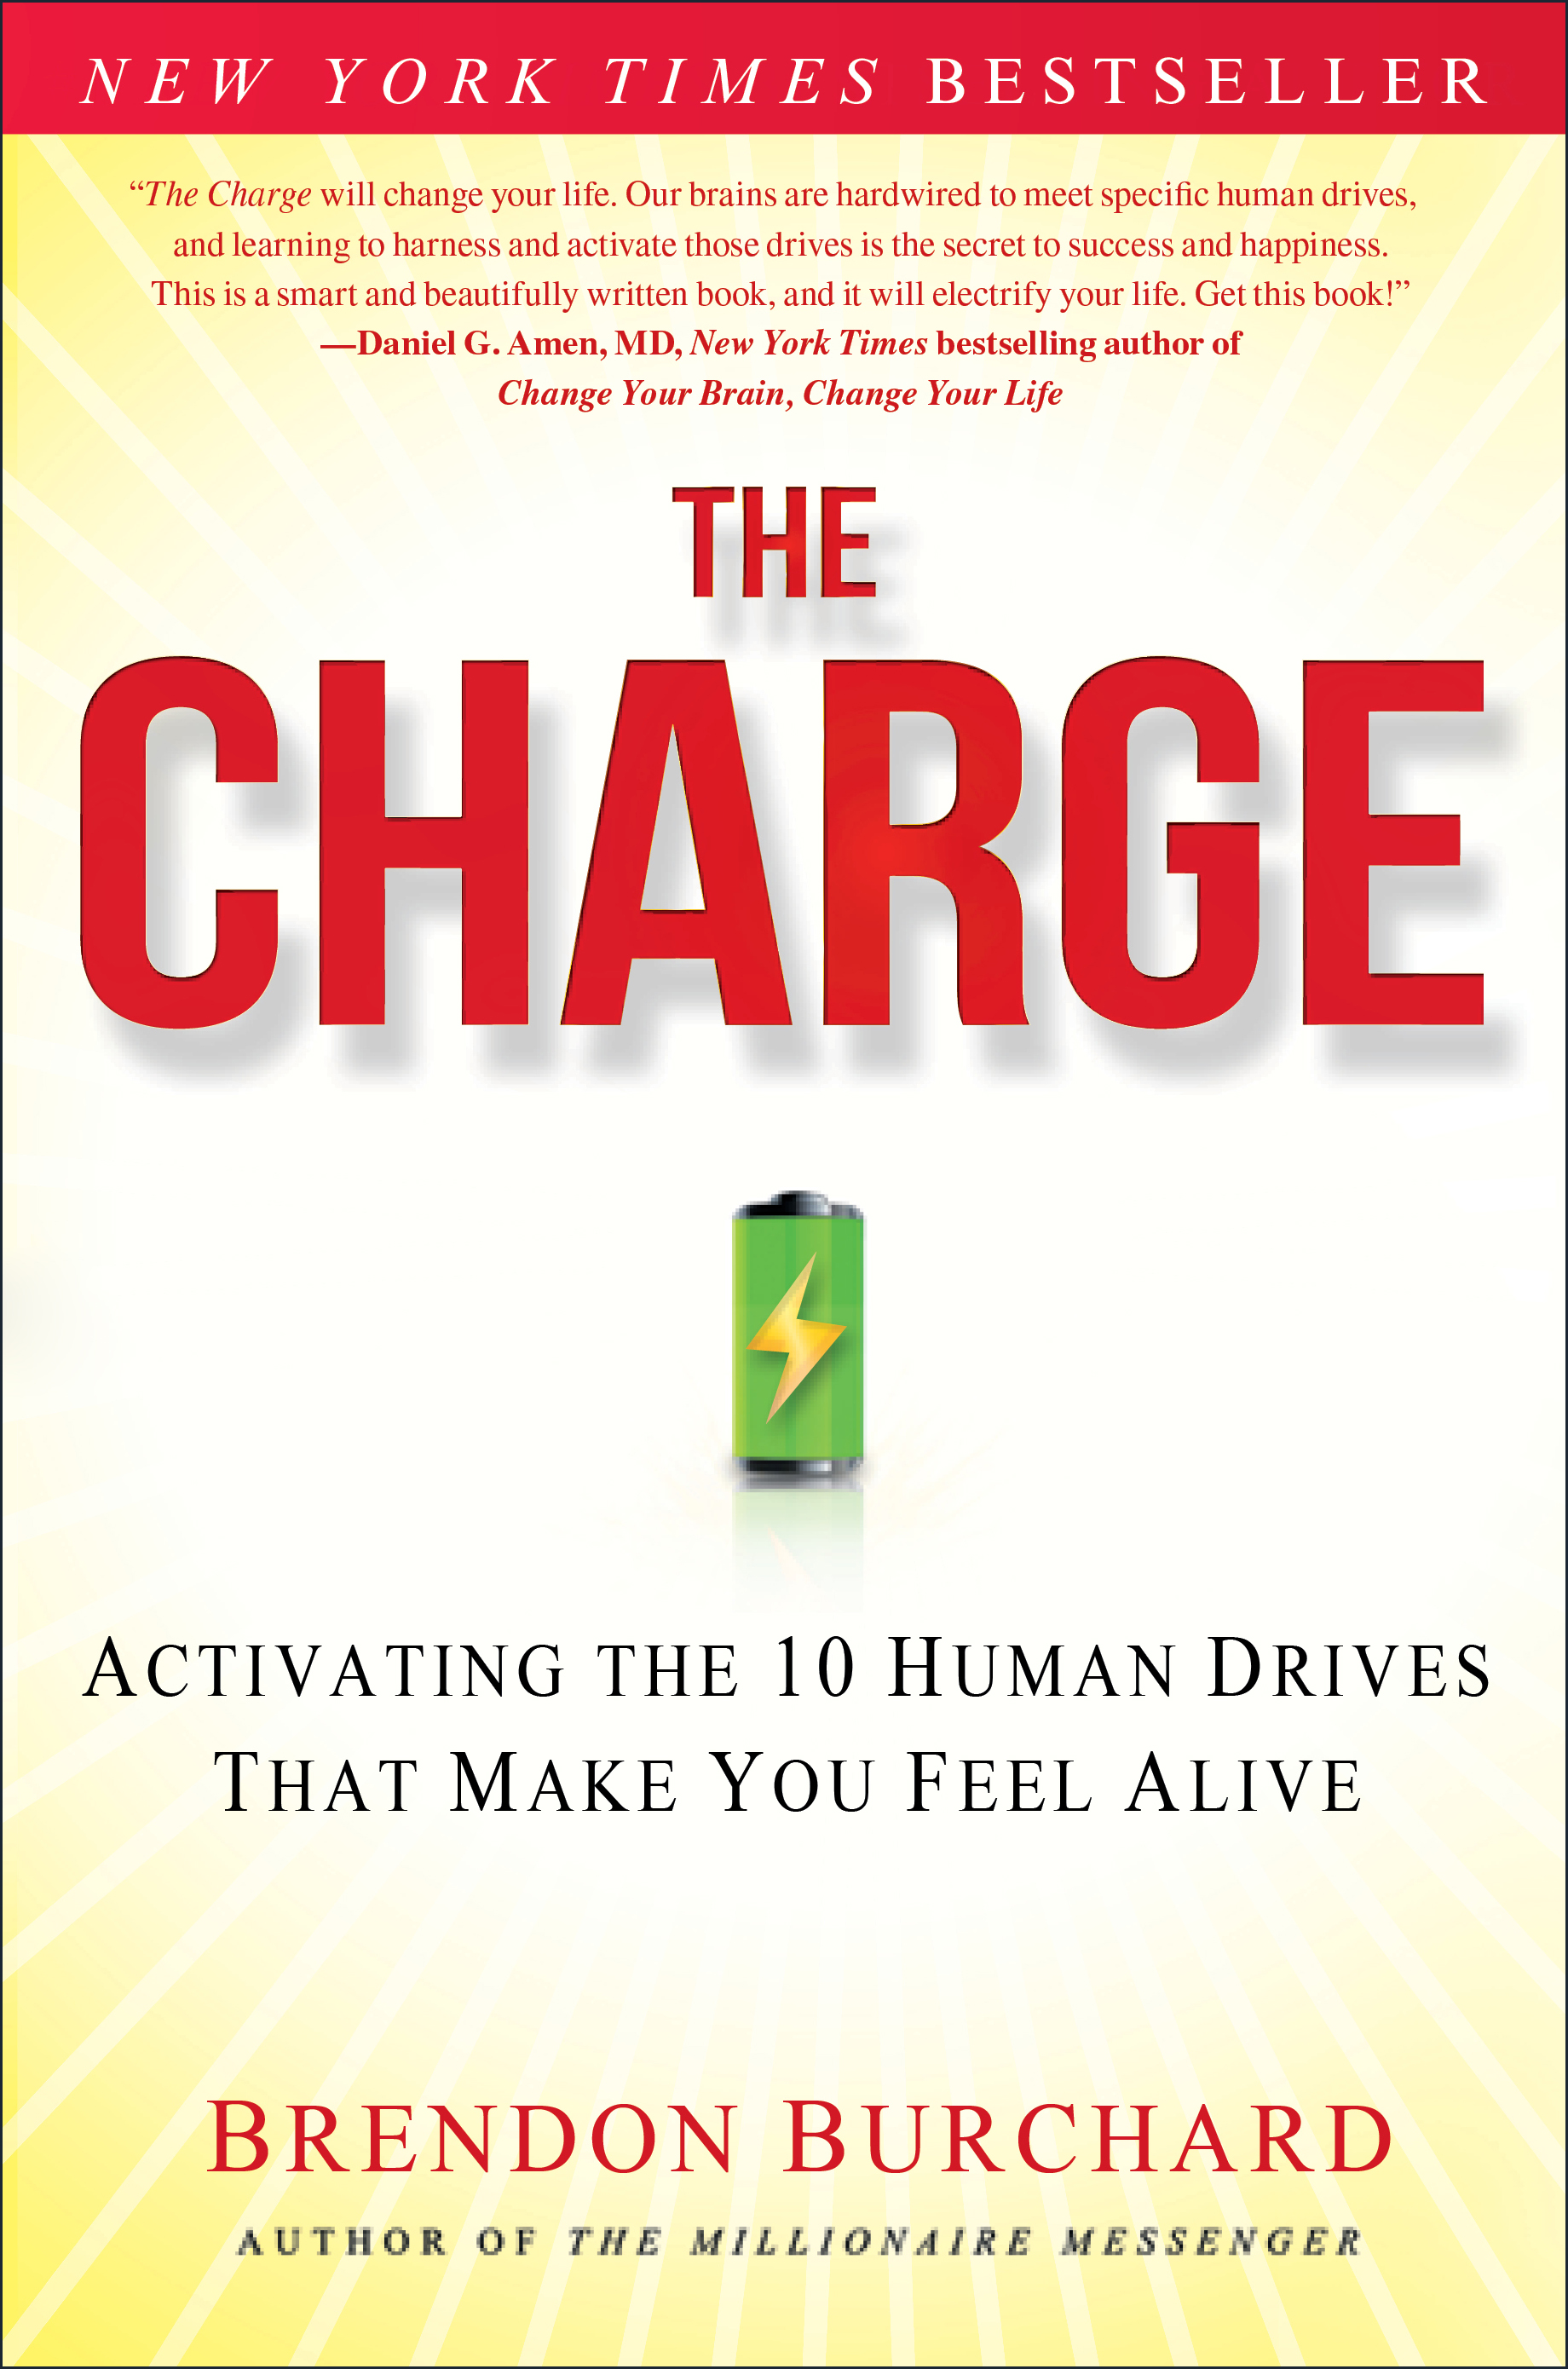 brendon burchard, the charge, erica castner